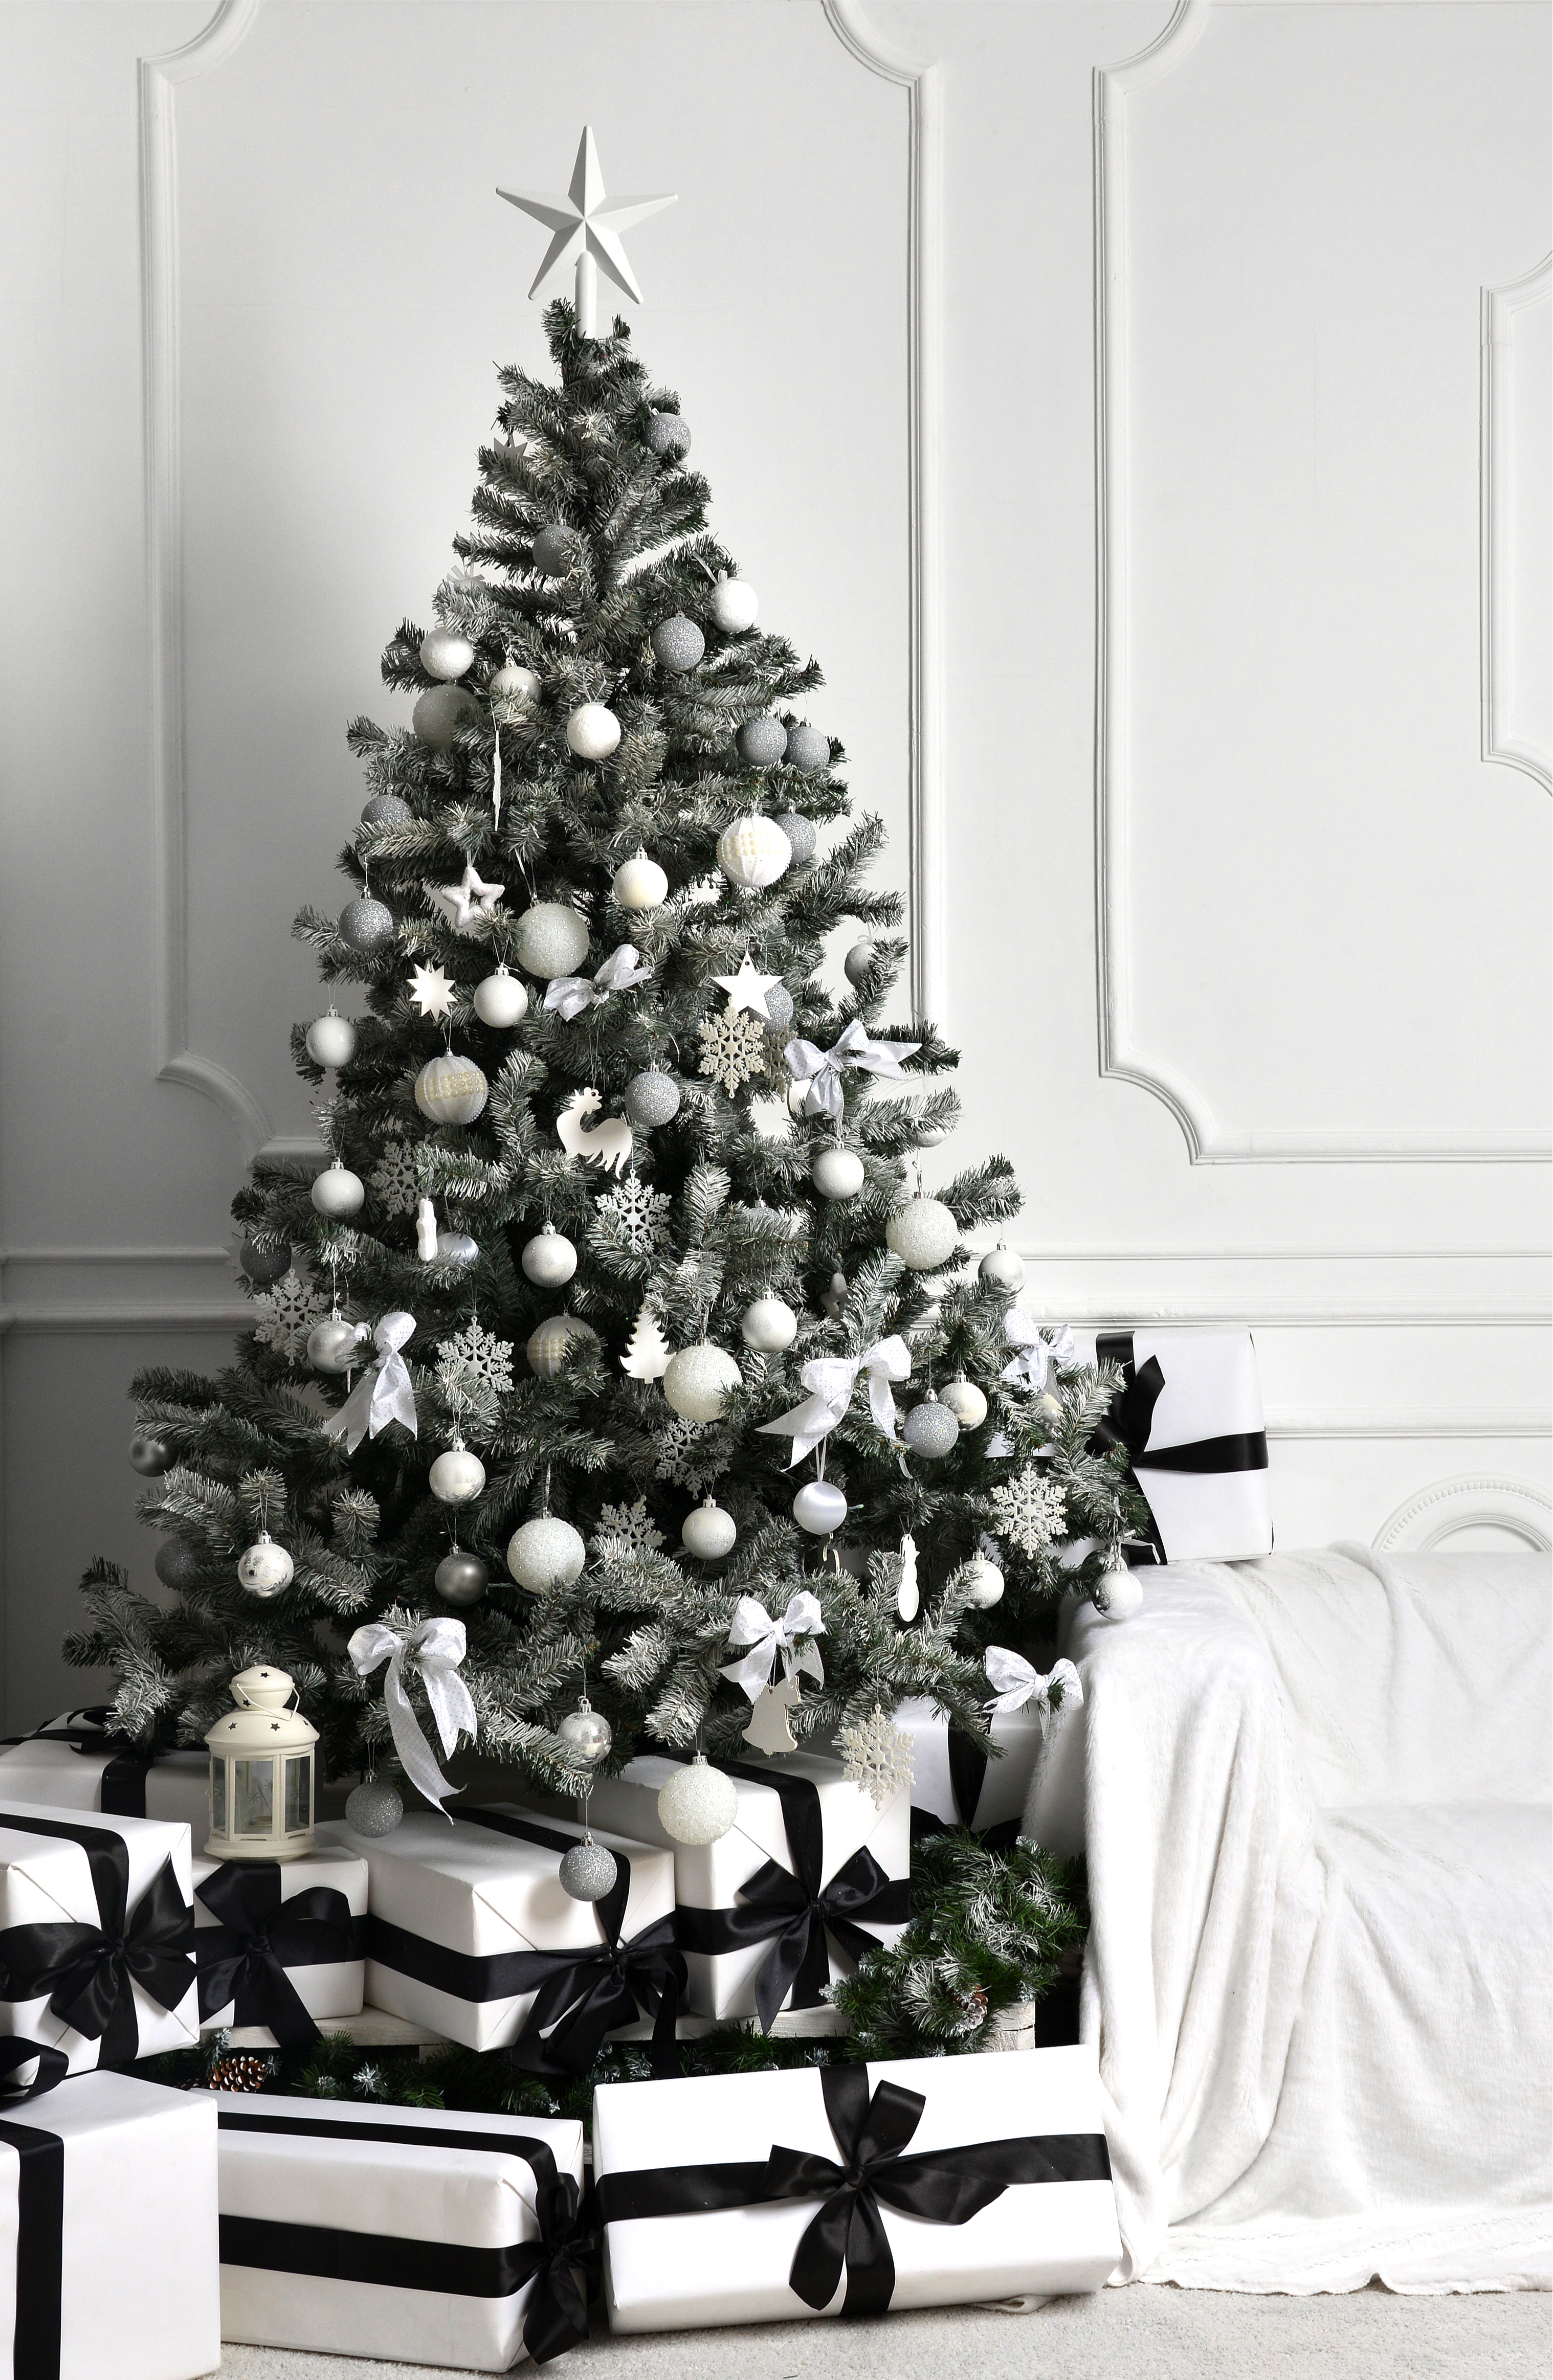 Here are some great ways to decorate a Christmas tree. Black and white are definitely unexpected for a Christmas tree, but there's nothing wrong with thinking outside the box when you get results as gorgeous as this!